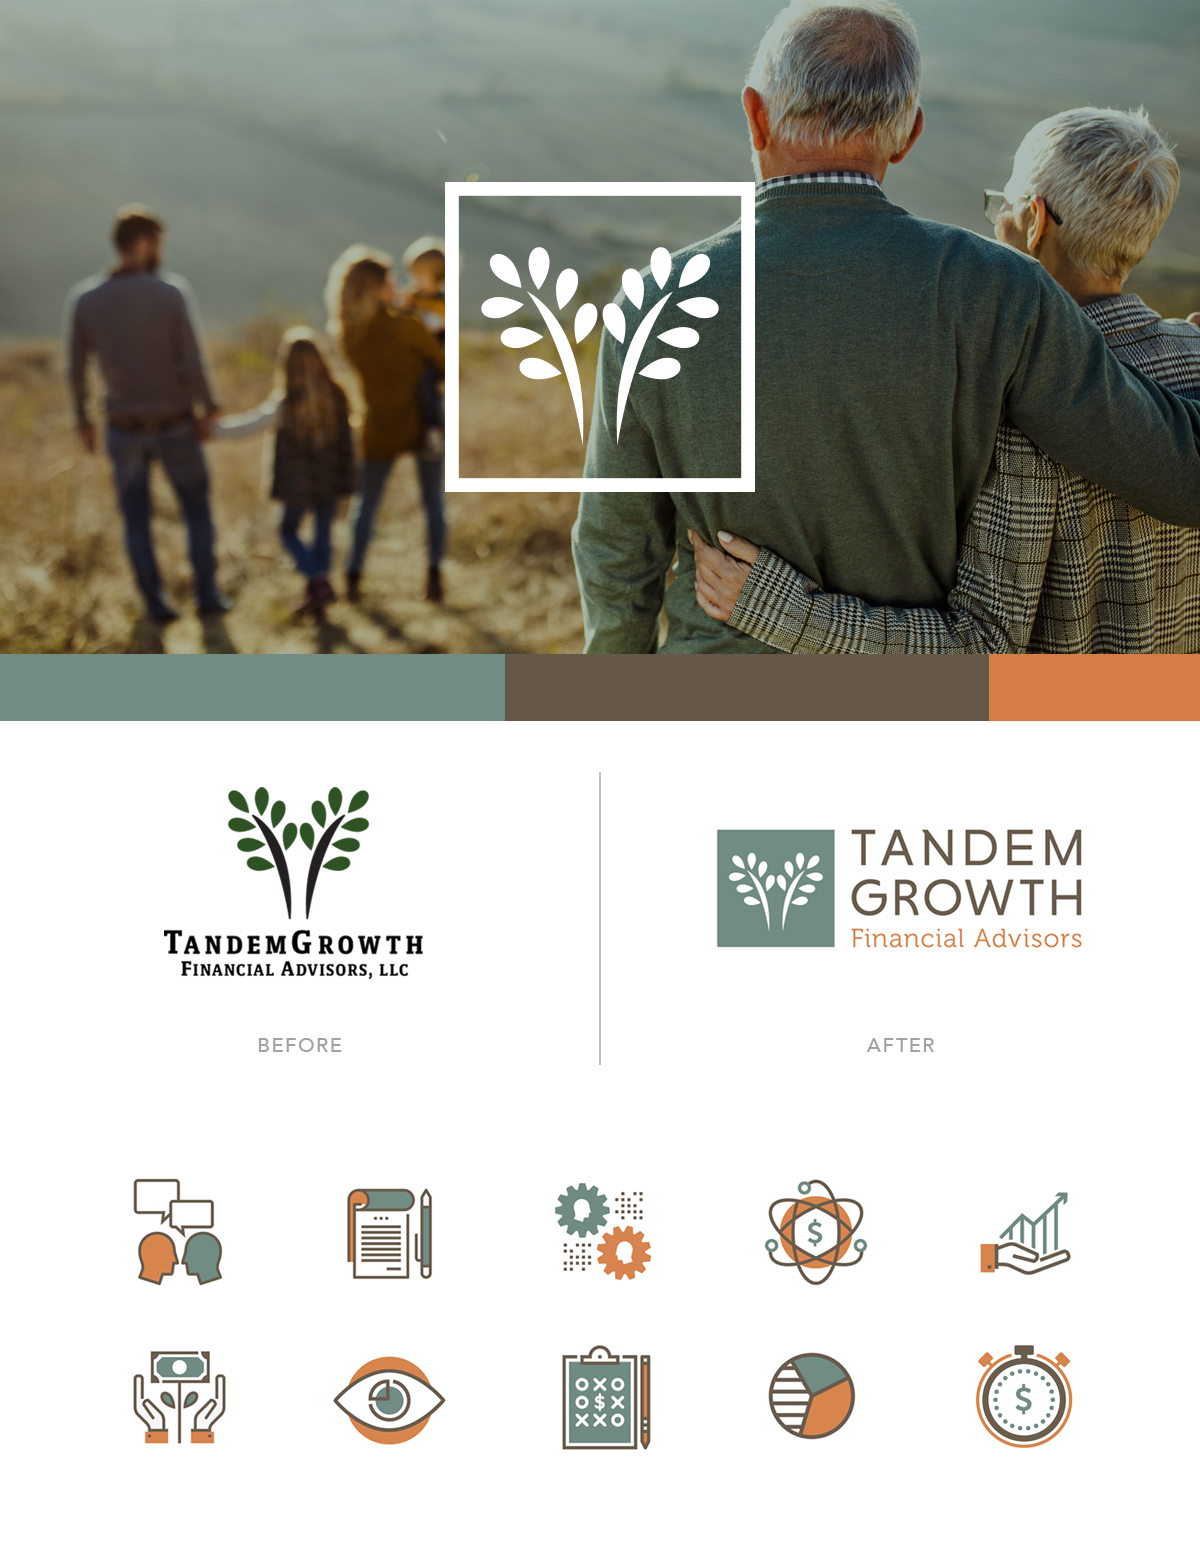 TandemGrowth Financial Advisors - Branding Refresh - Logo, Submark and Icons by Annatto